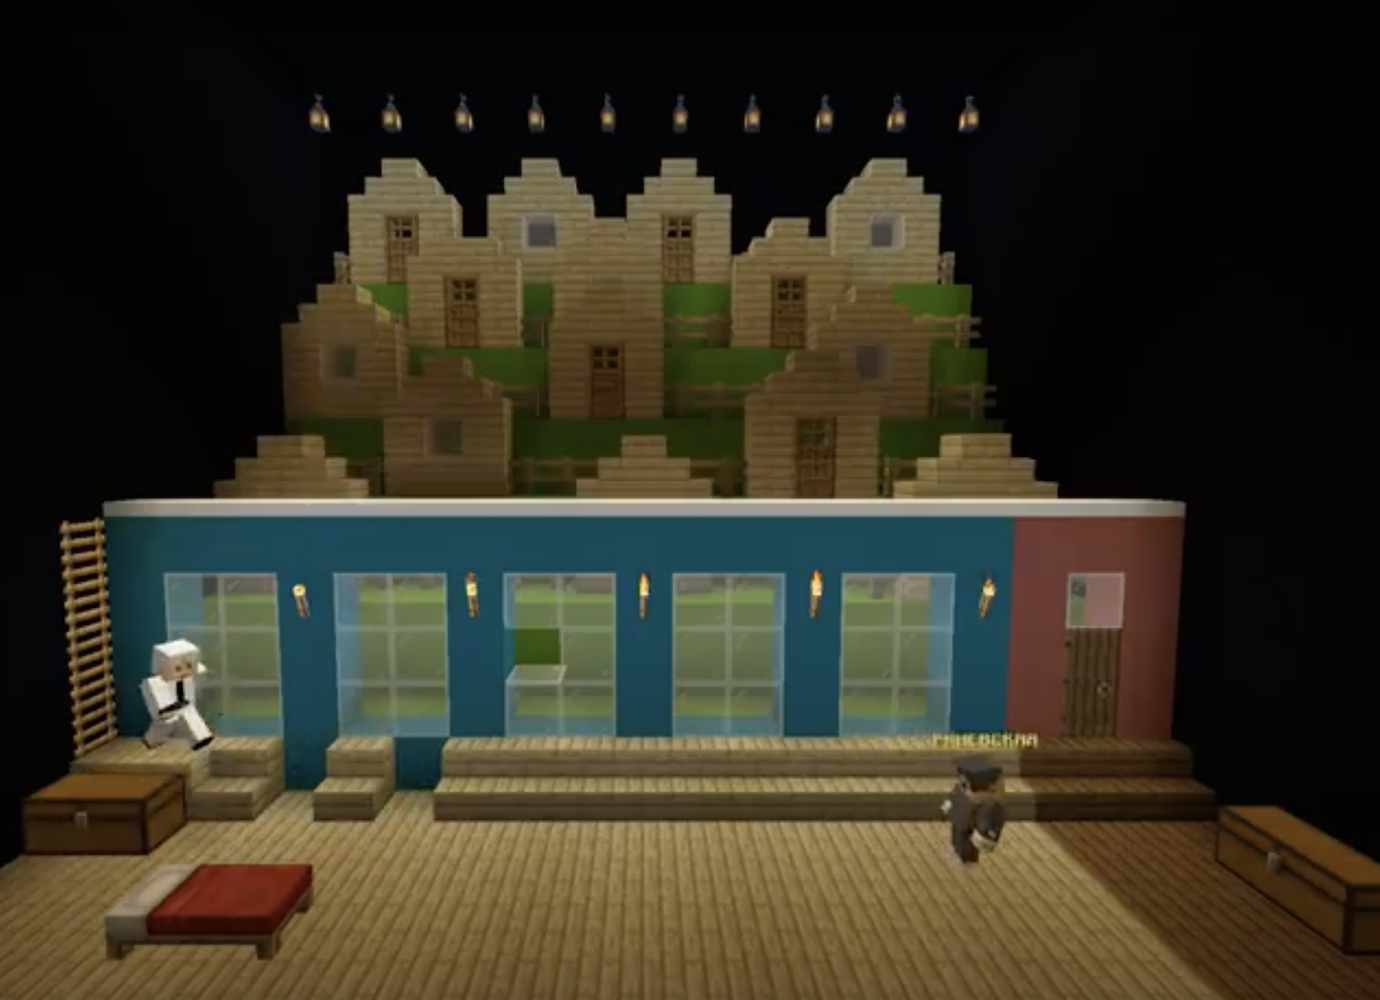 Russian theatre stages Chekhov's The Cherry Orchard inside Minecraft